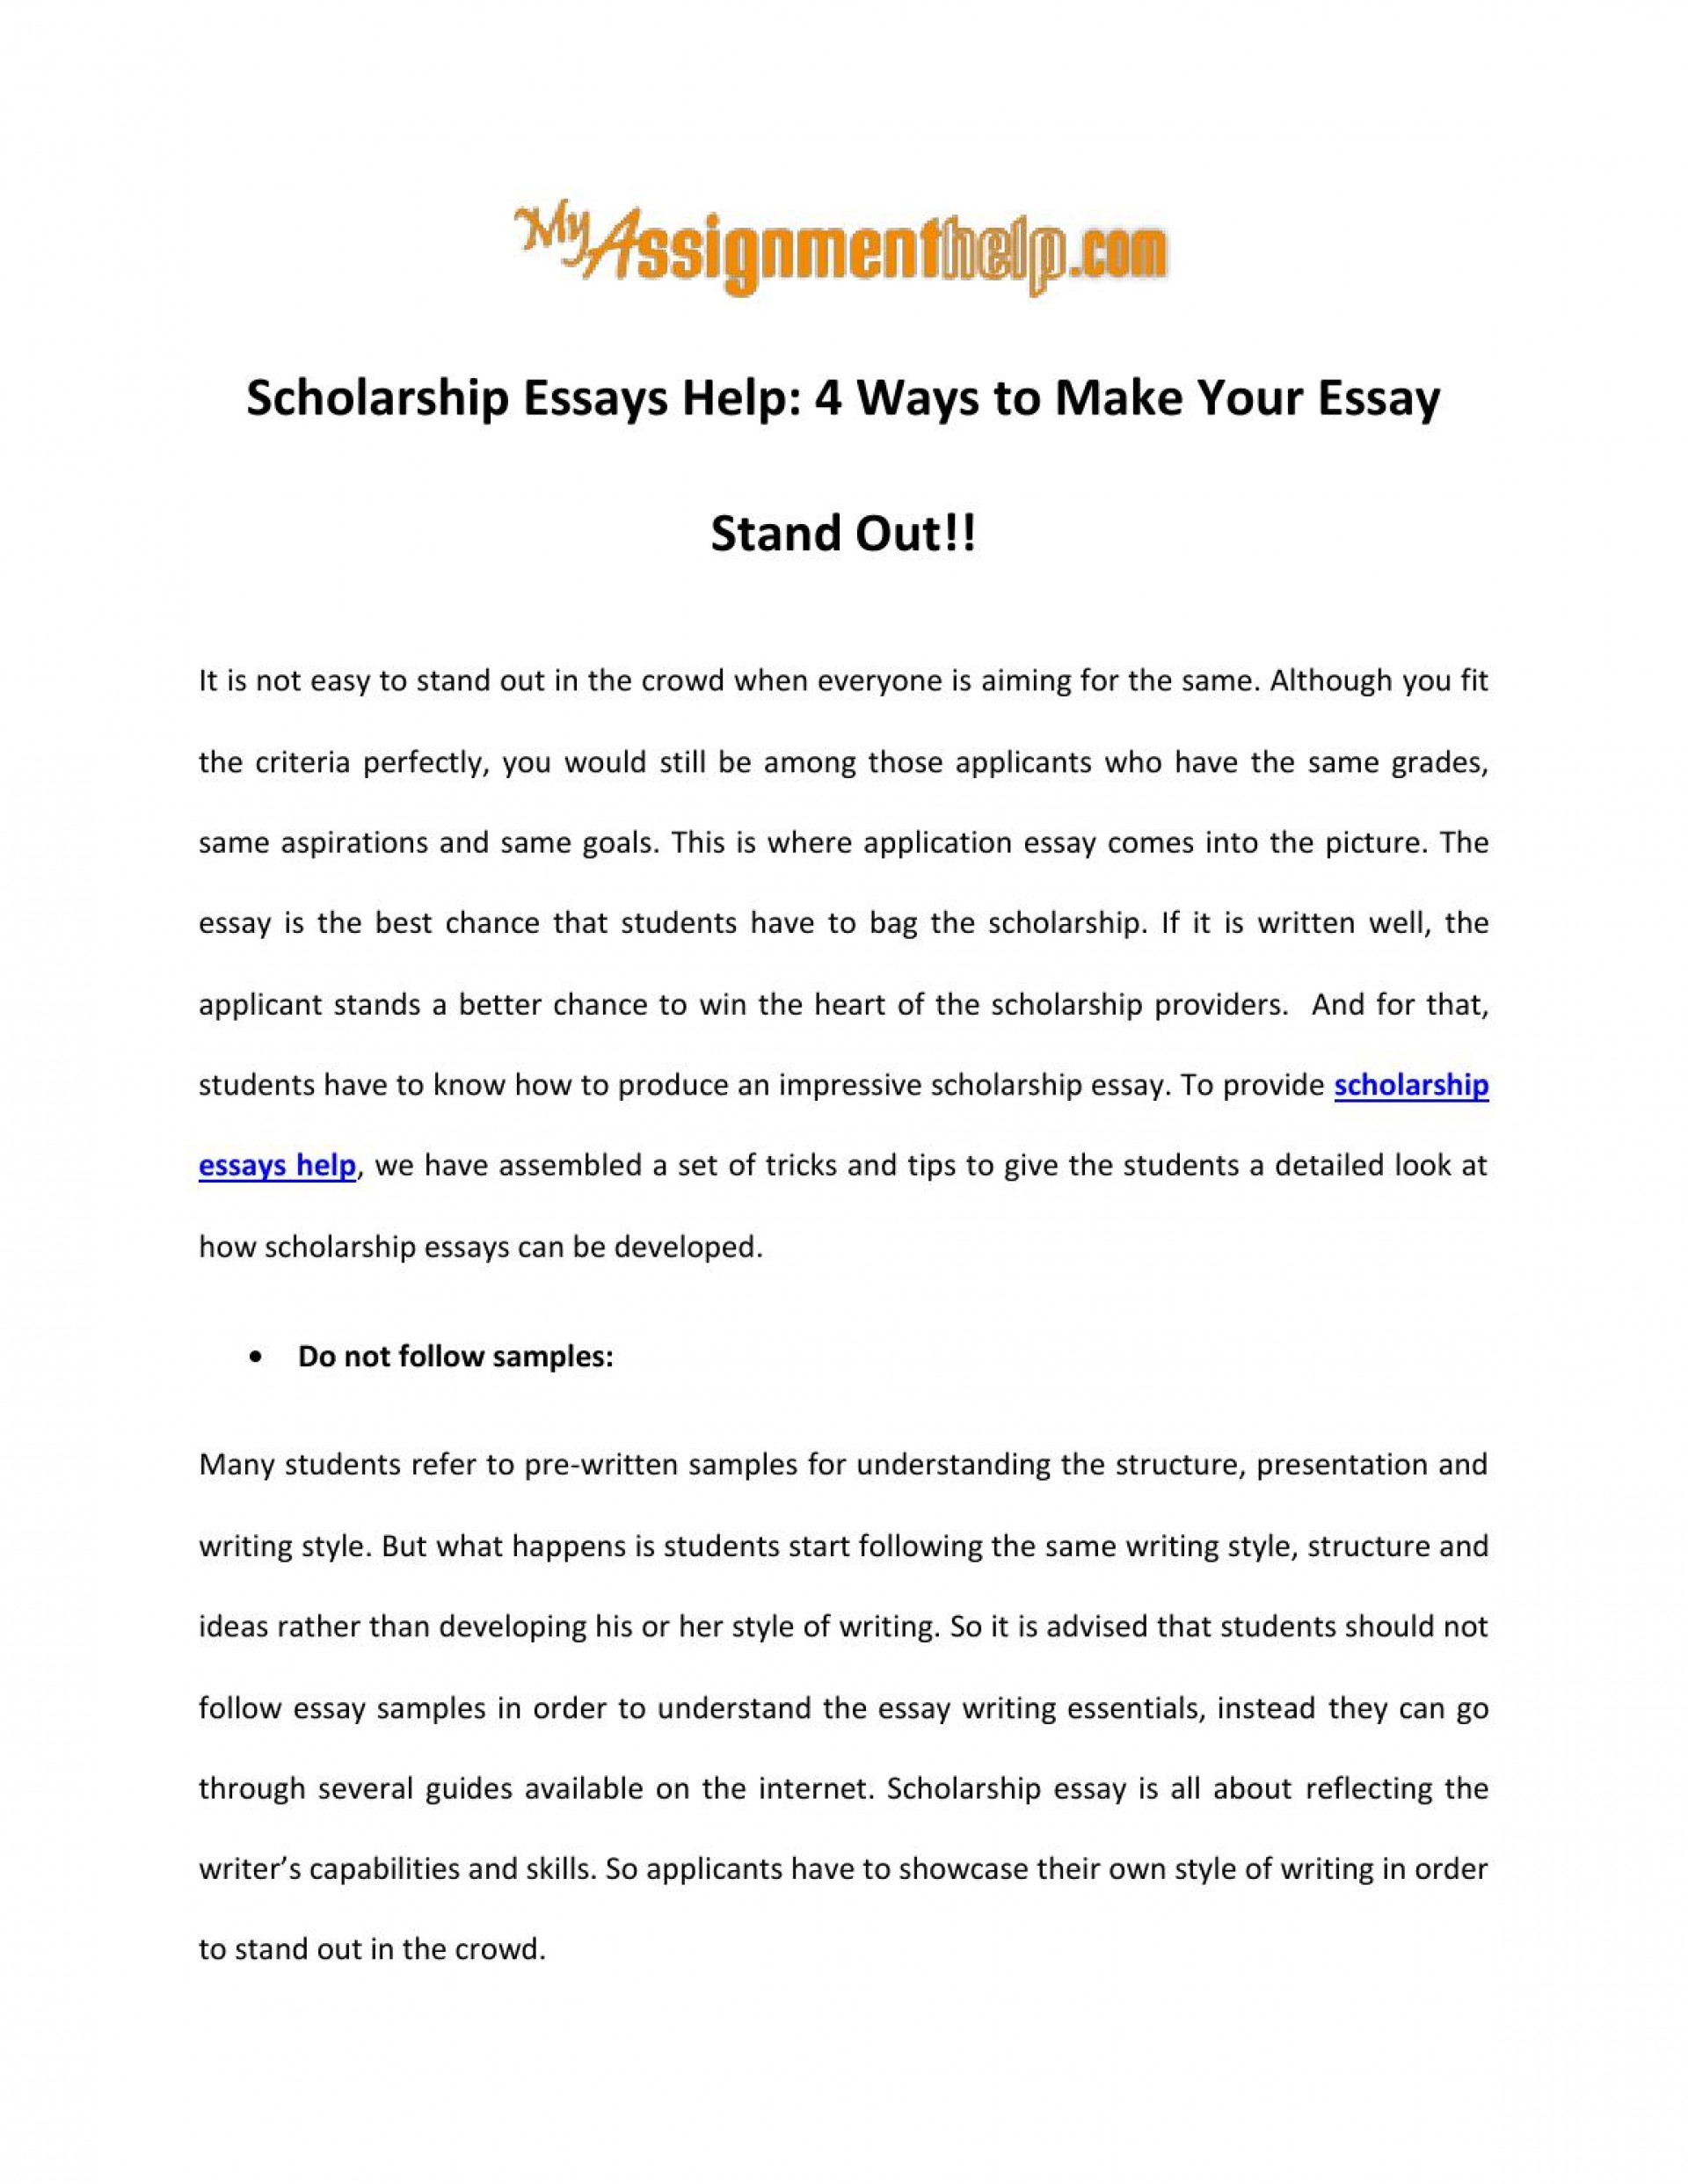 008 Scholarship Essays Help Ways To Make Your Essay Stand Out By Tips For Writing Winning P Effective Singular Rotc Psc Reddit 1920